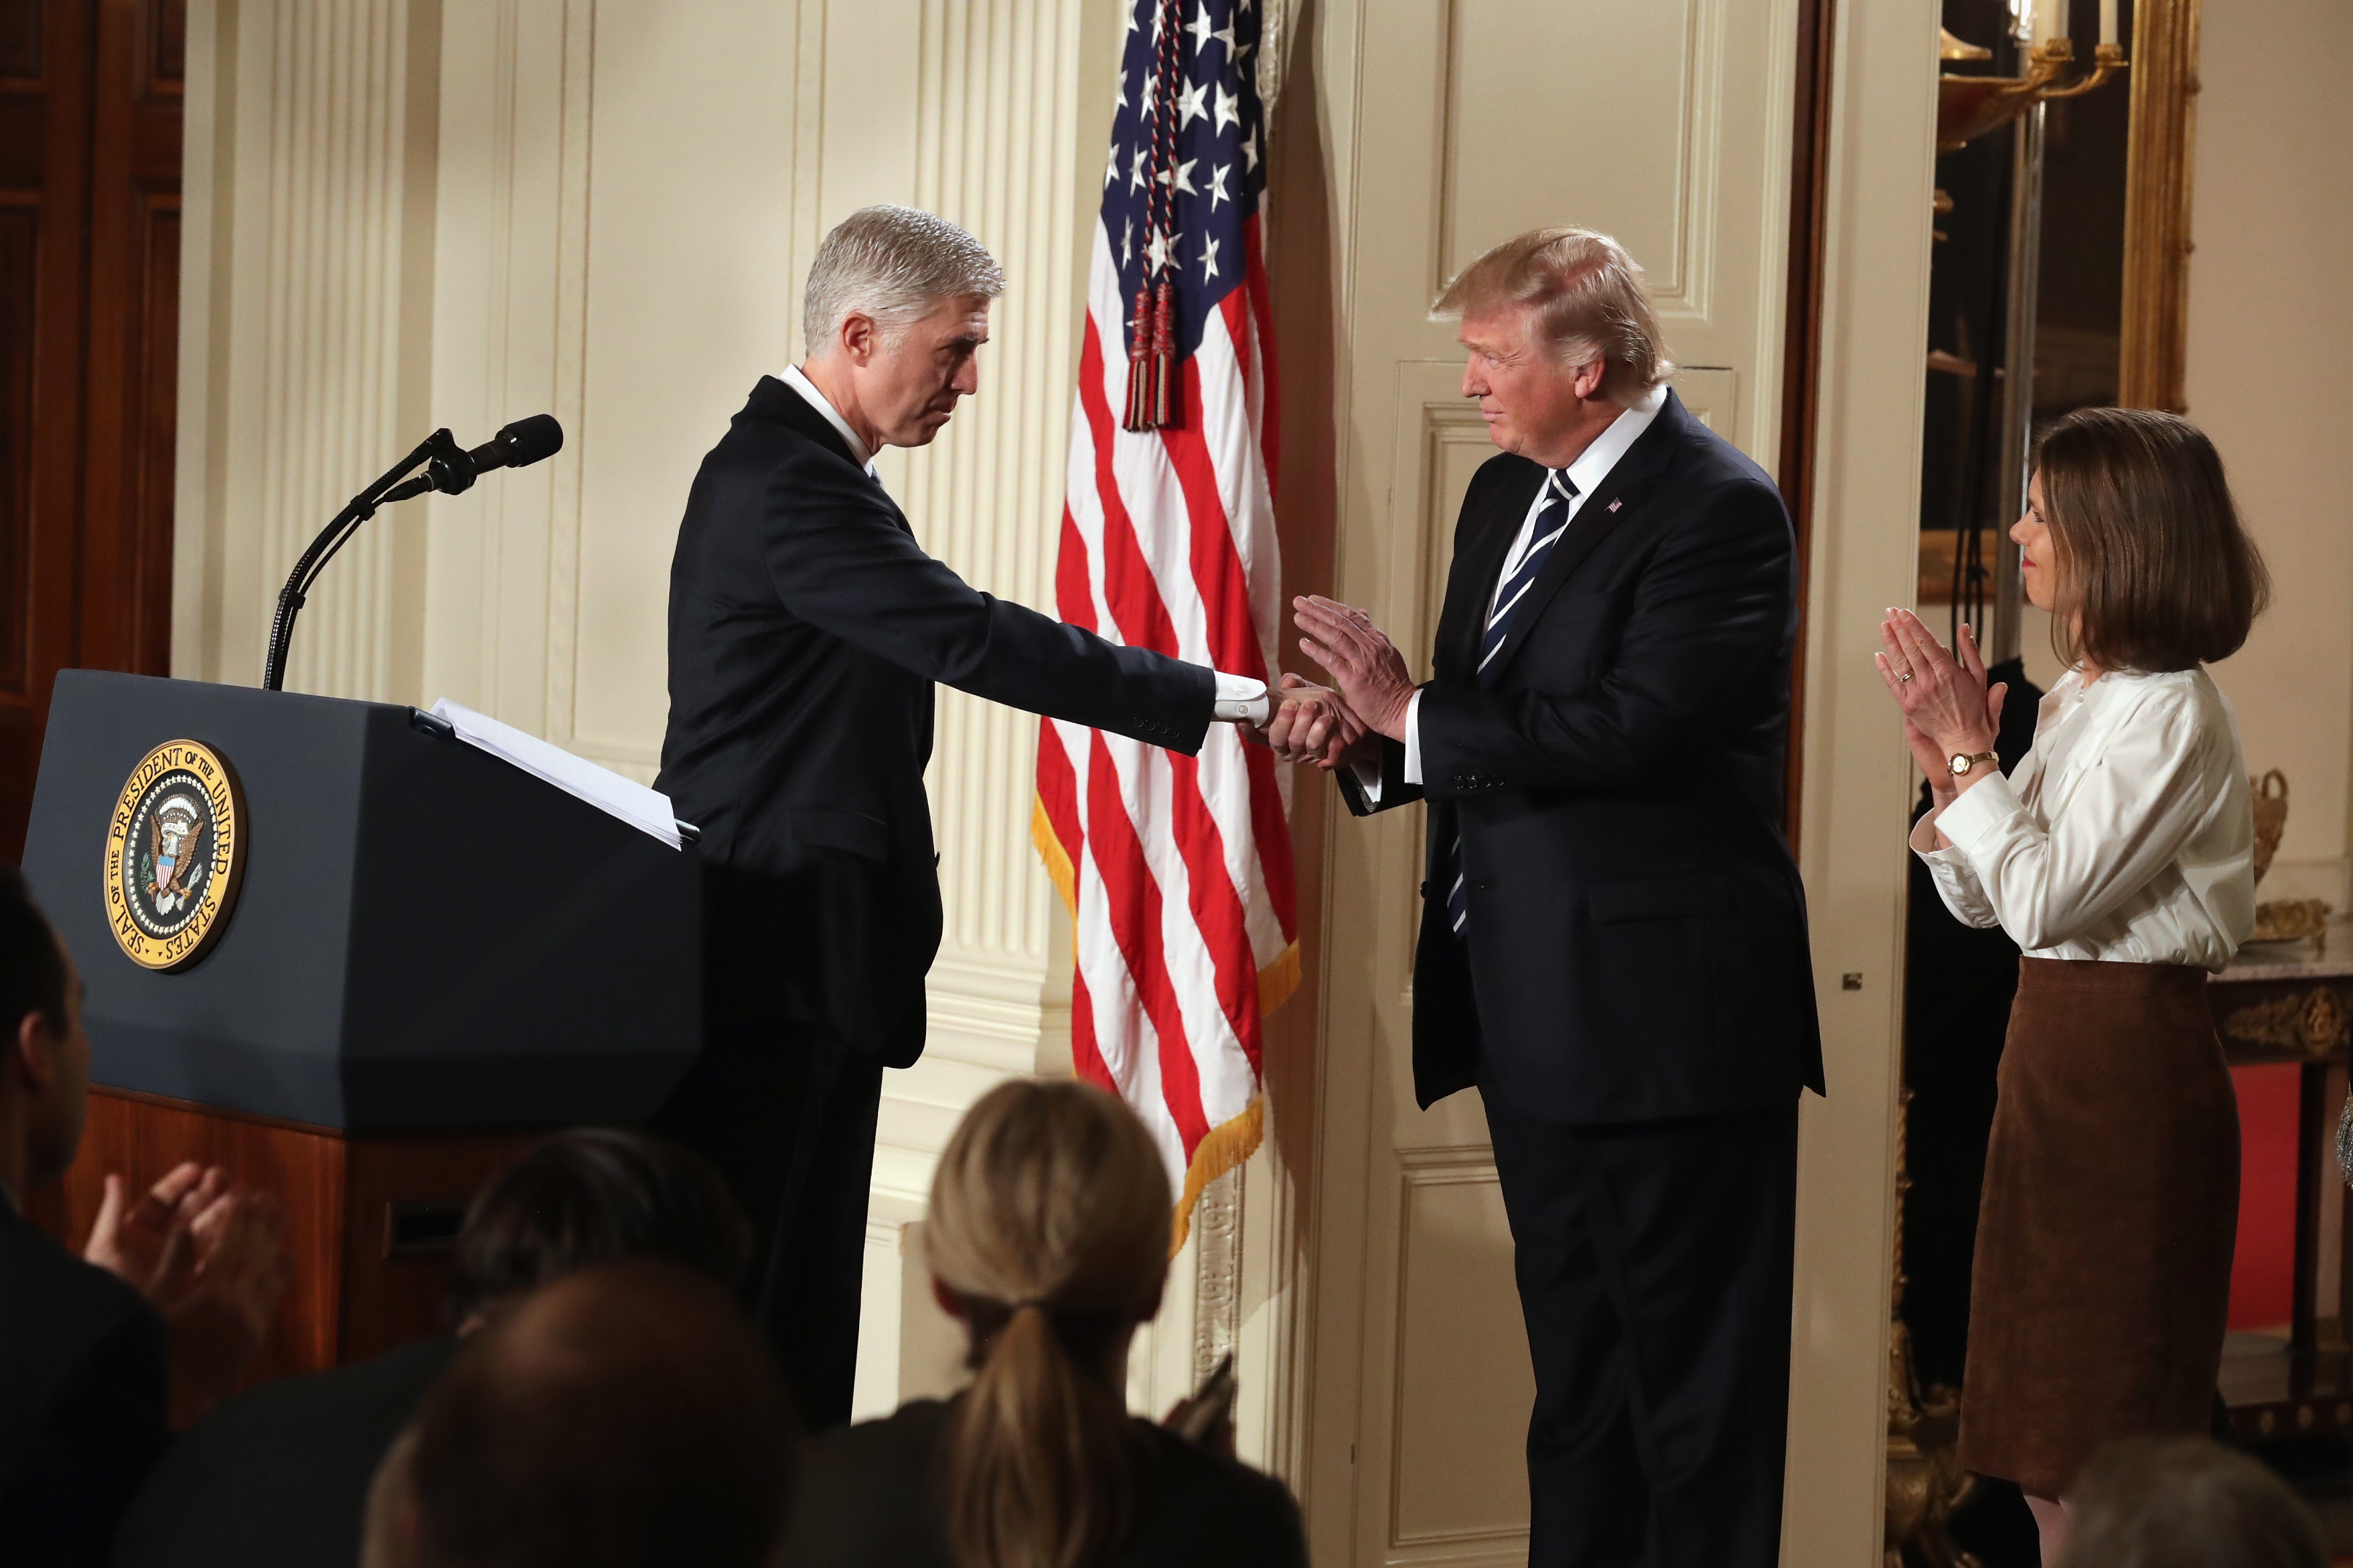 President Donald Trump shakes hands with Justice Neil Gorsuch after nominating him to the Supreme Court on January 31, 2017. (Chip Somodevilla/Getty Images)